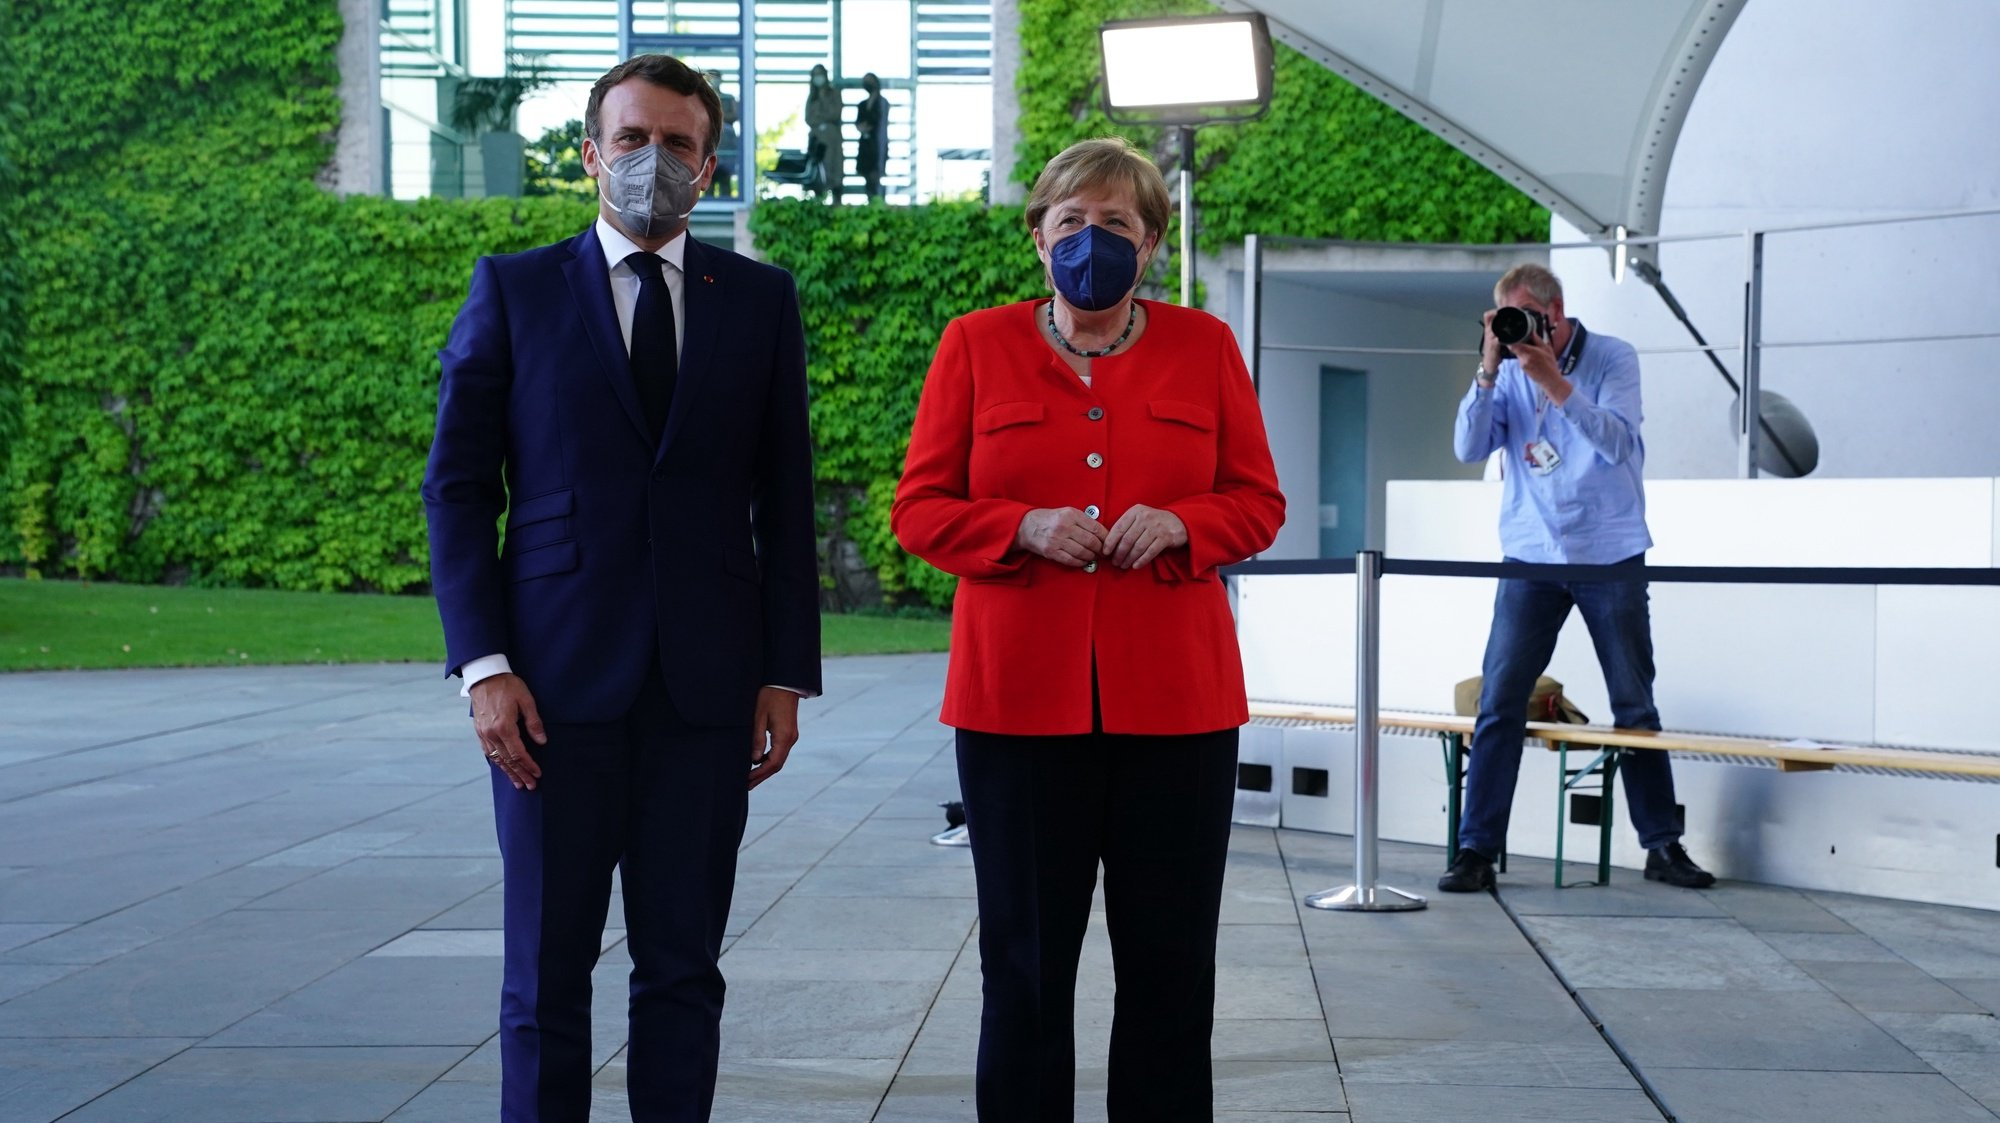 epa09283450 German Chancellor Angela Merkel (R) welcomes French President Emmanuel Macron (L) as he arrives for their meeting at the Chancellery in Berlin, Germany, 18 June 2021. President Macron and Chancellor Merkel will meet for bilateral talks.  EPA/CLEMENS BILAN